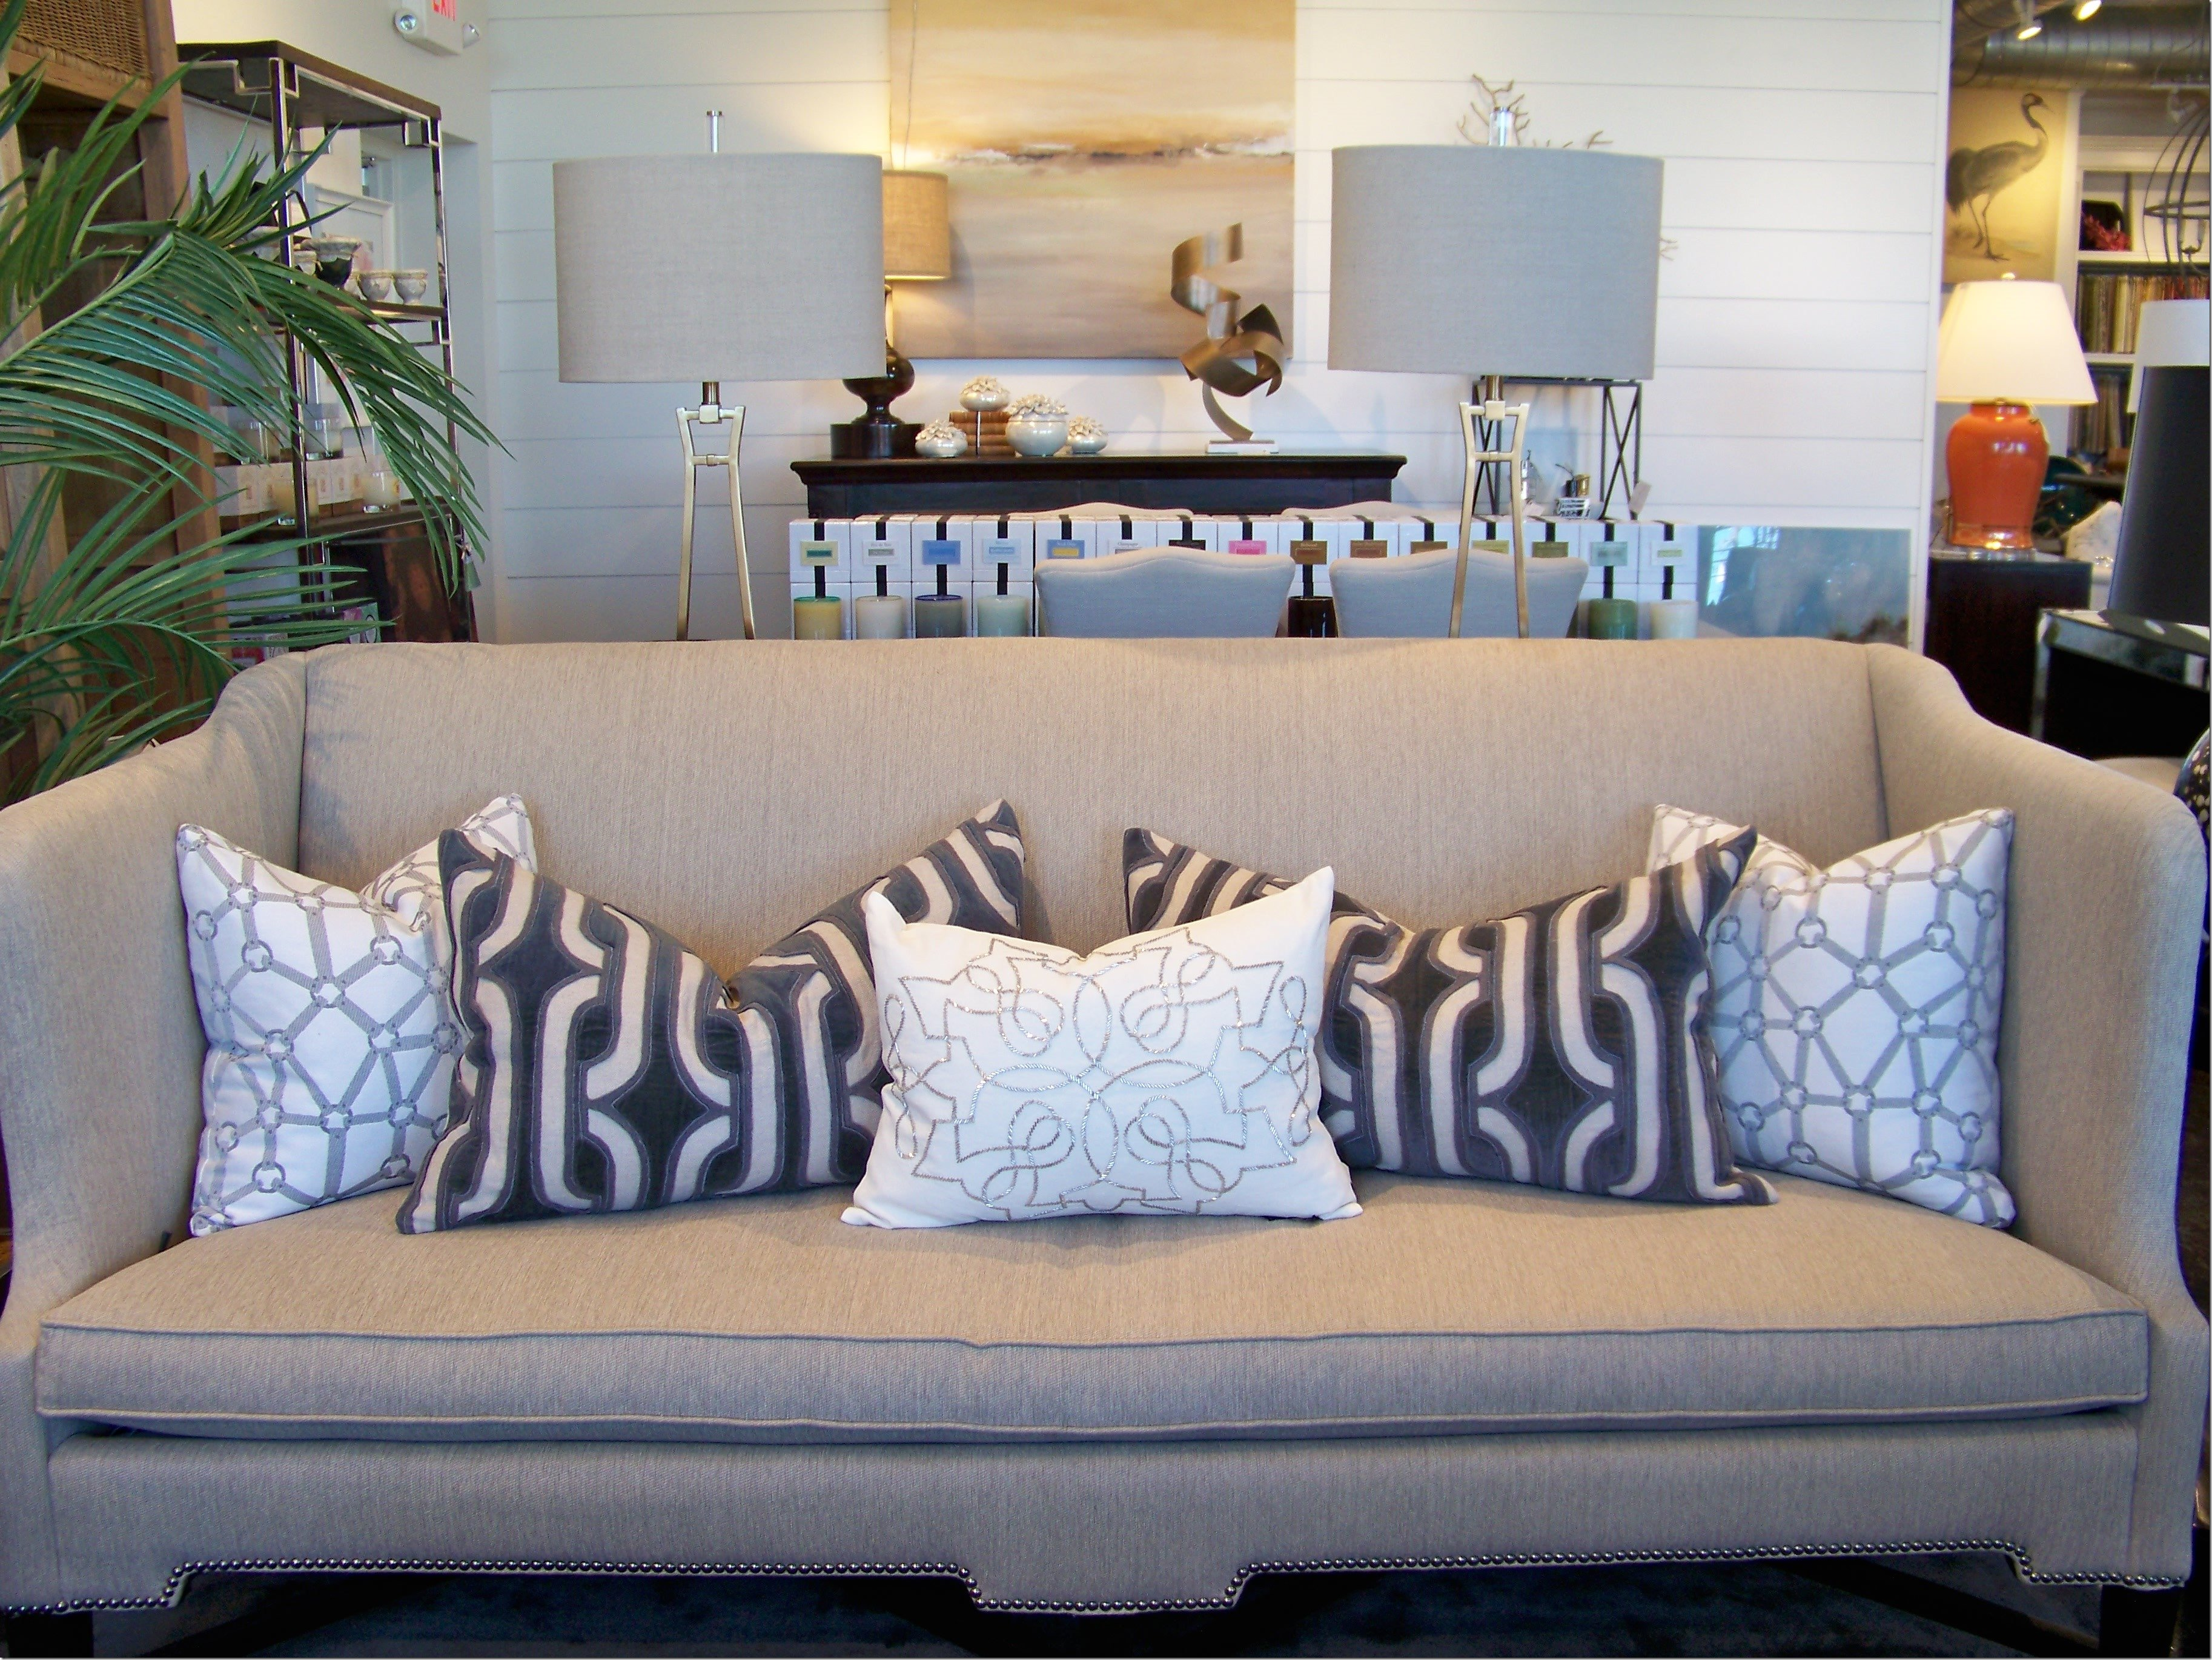 What?s New Wednesday: Decorative Throw Pillows - Heather Scott Home & Design